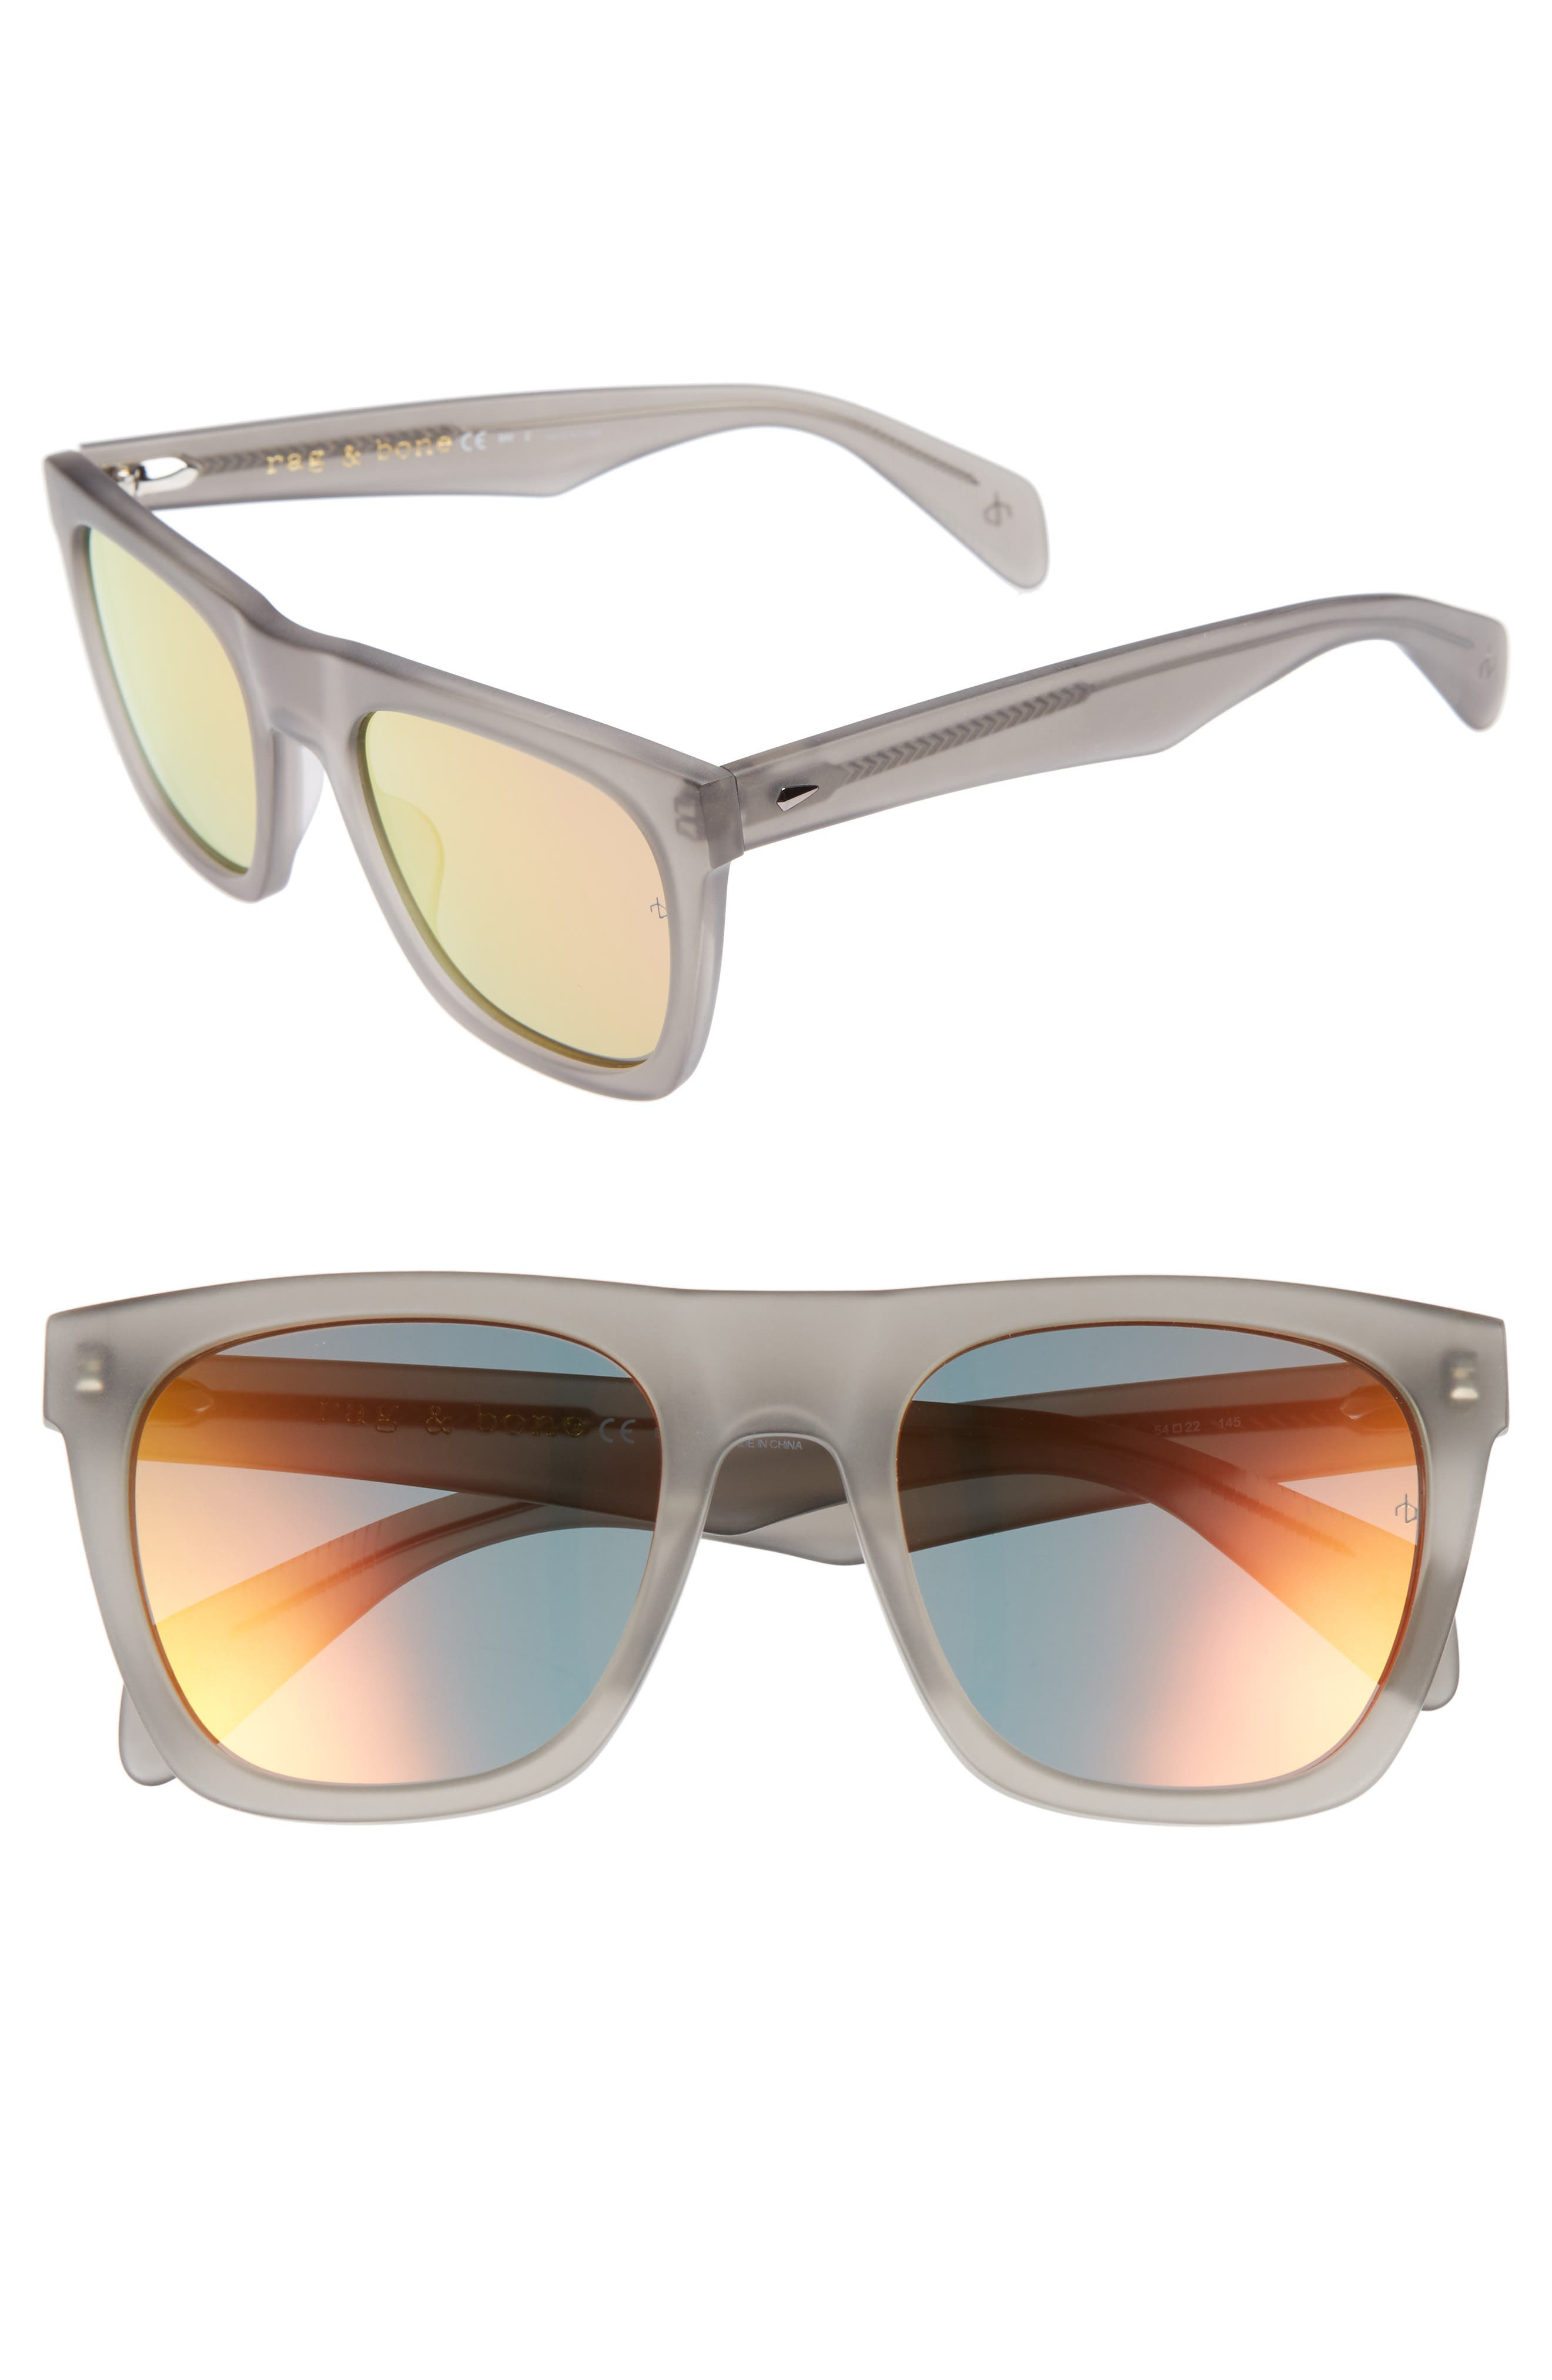 54mm Mirrored Sunglasses,                         Main,                         color, MATTE GREY